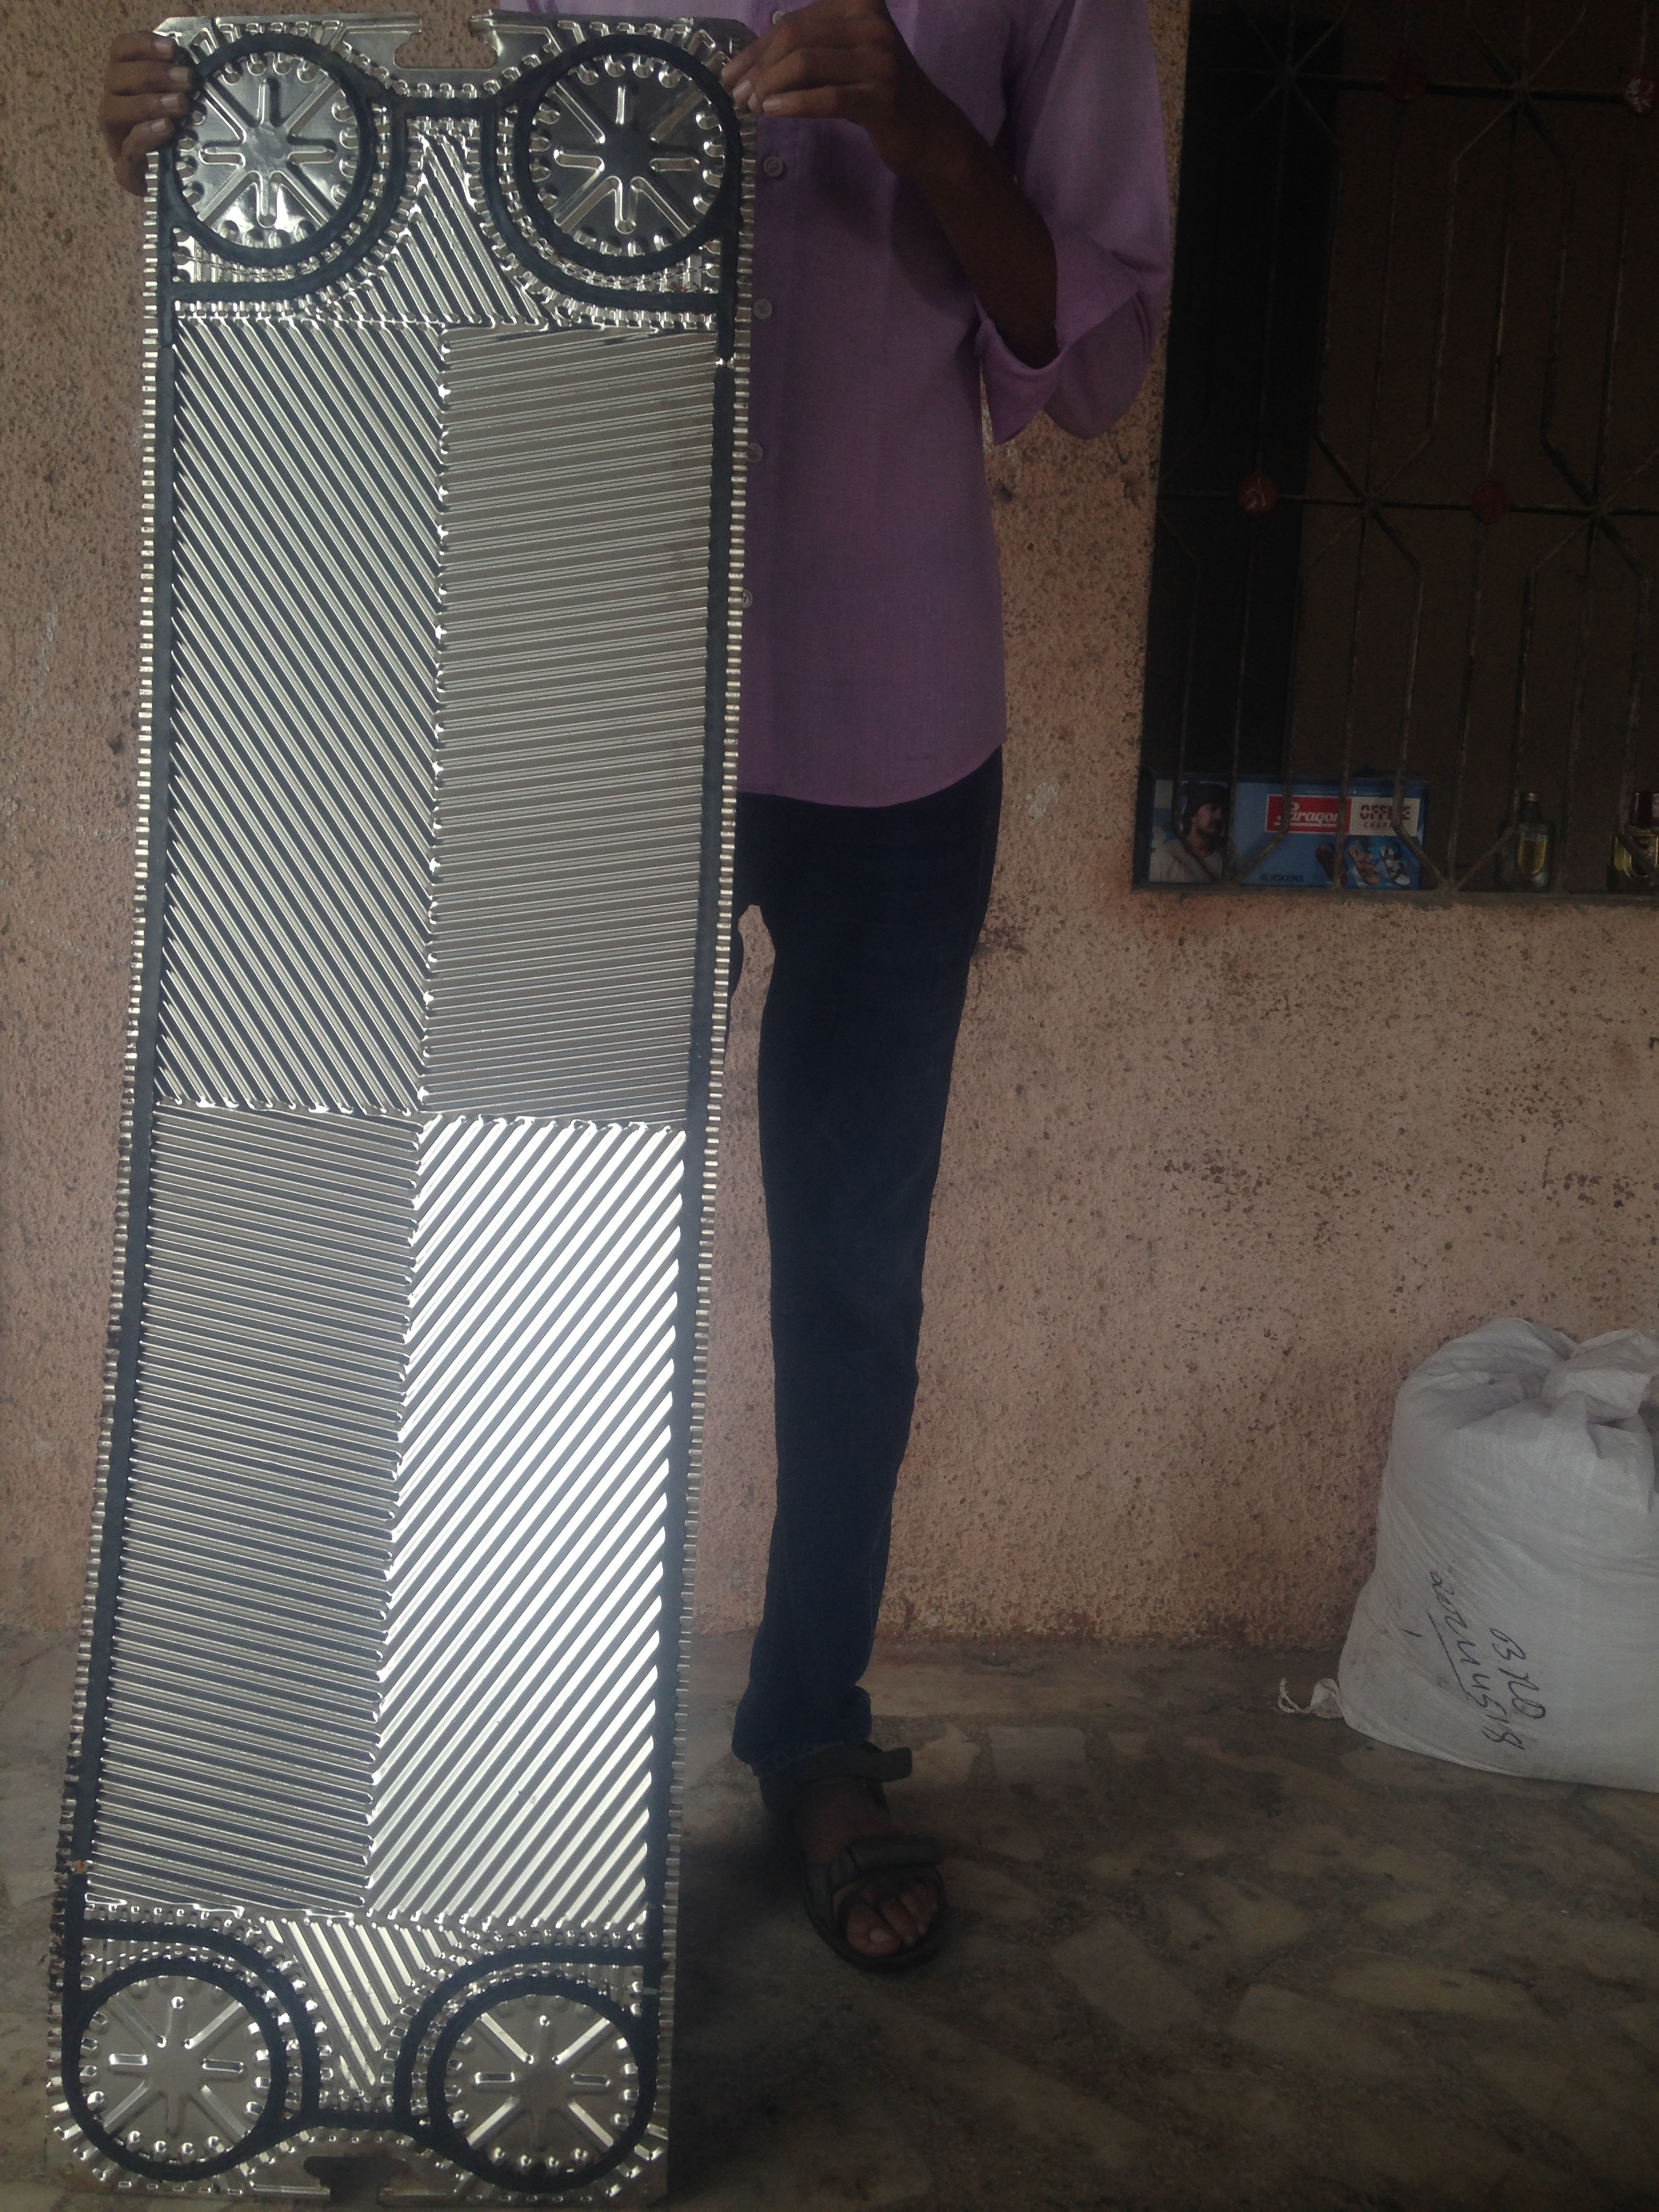 Plate Heat Exchanger Cleaning